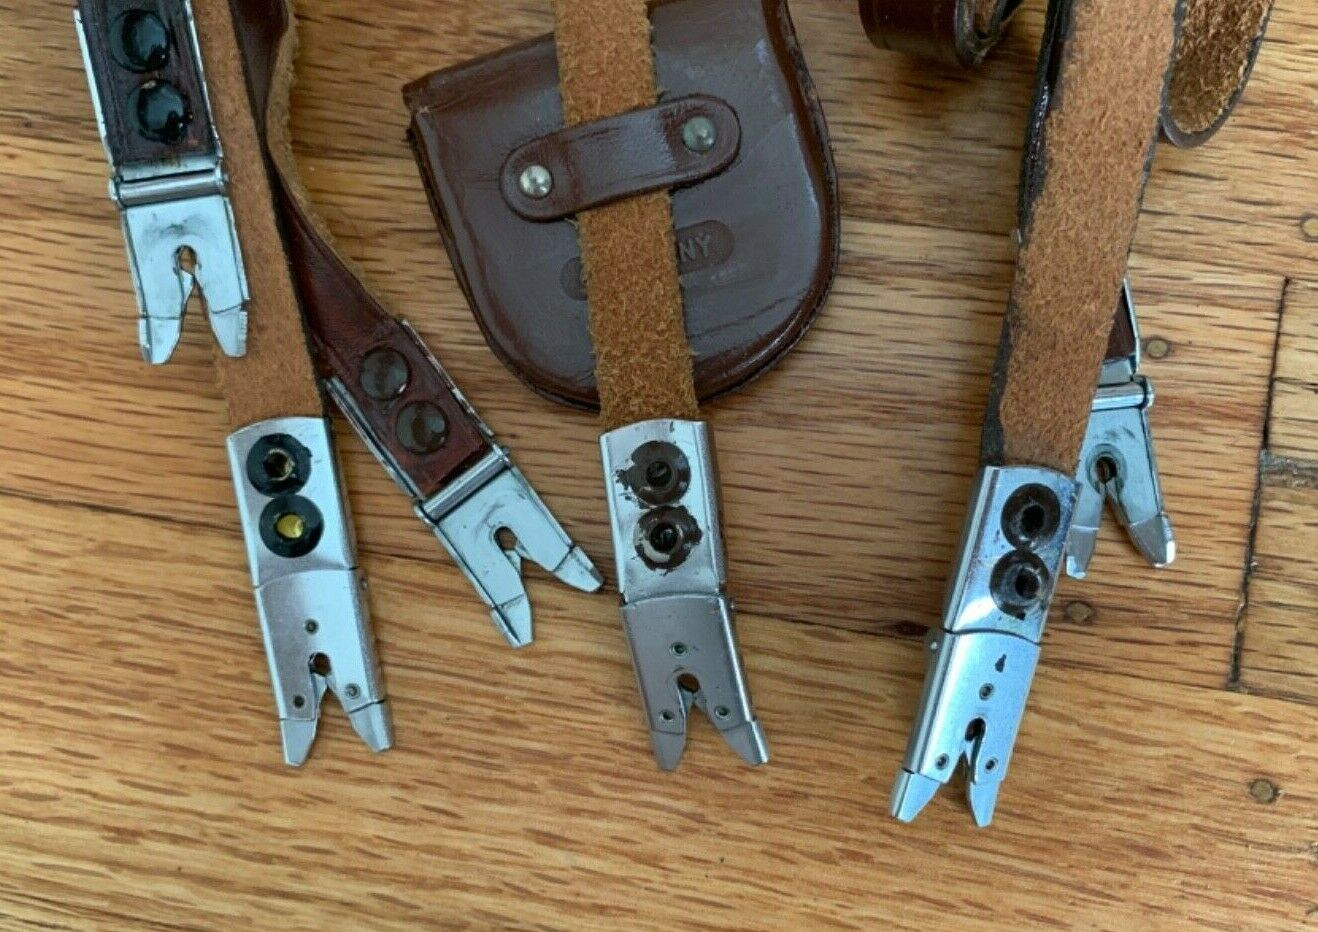 Scissor - Alligator Clips 6 With Straps And 1 Without A Strap 7 Clips Total - $29.95